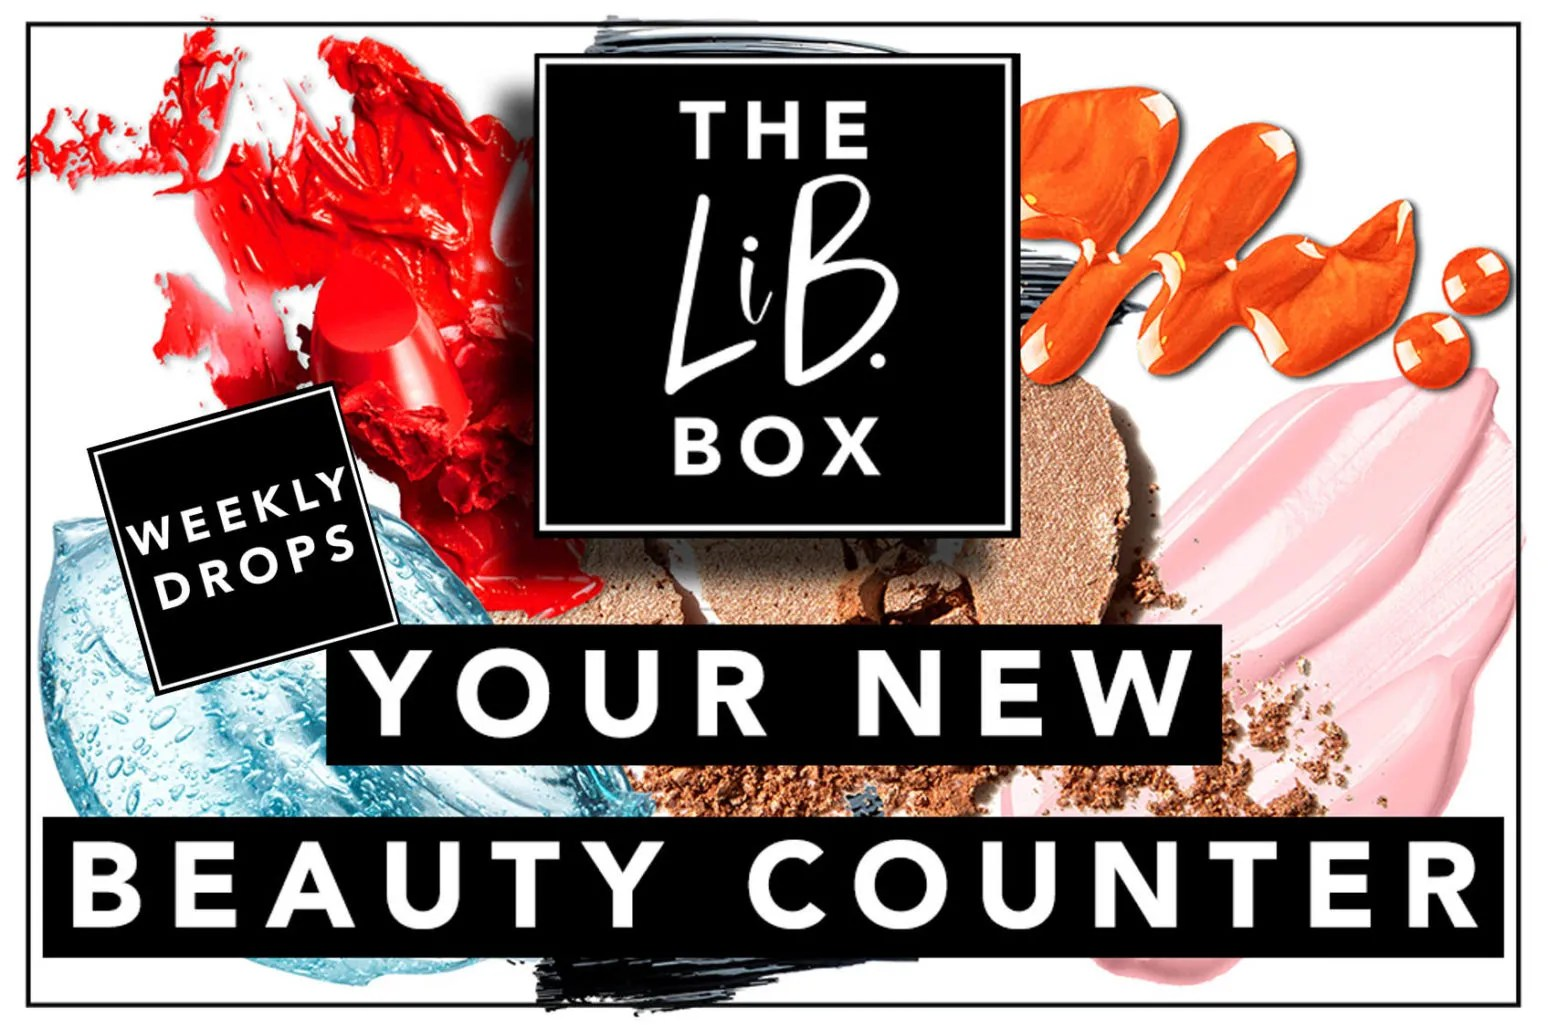 New Beauty Counter - DT